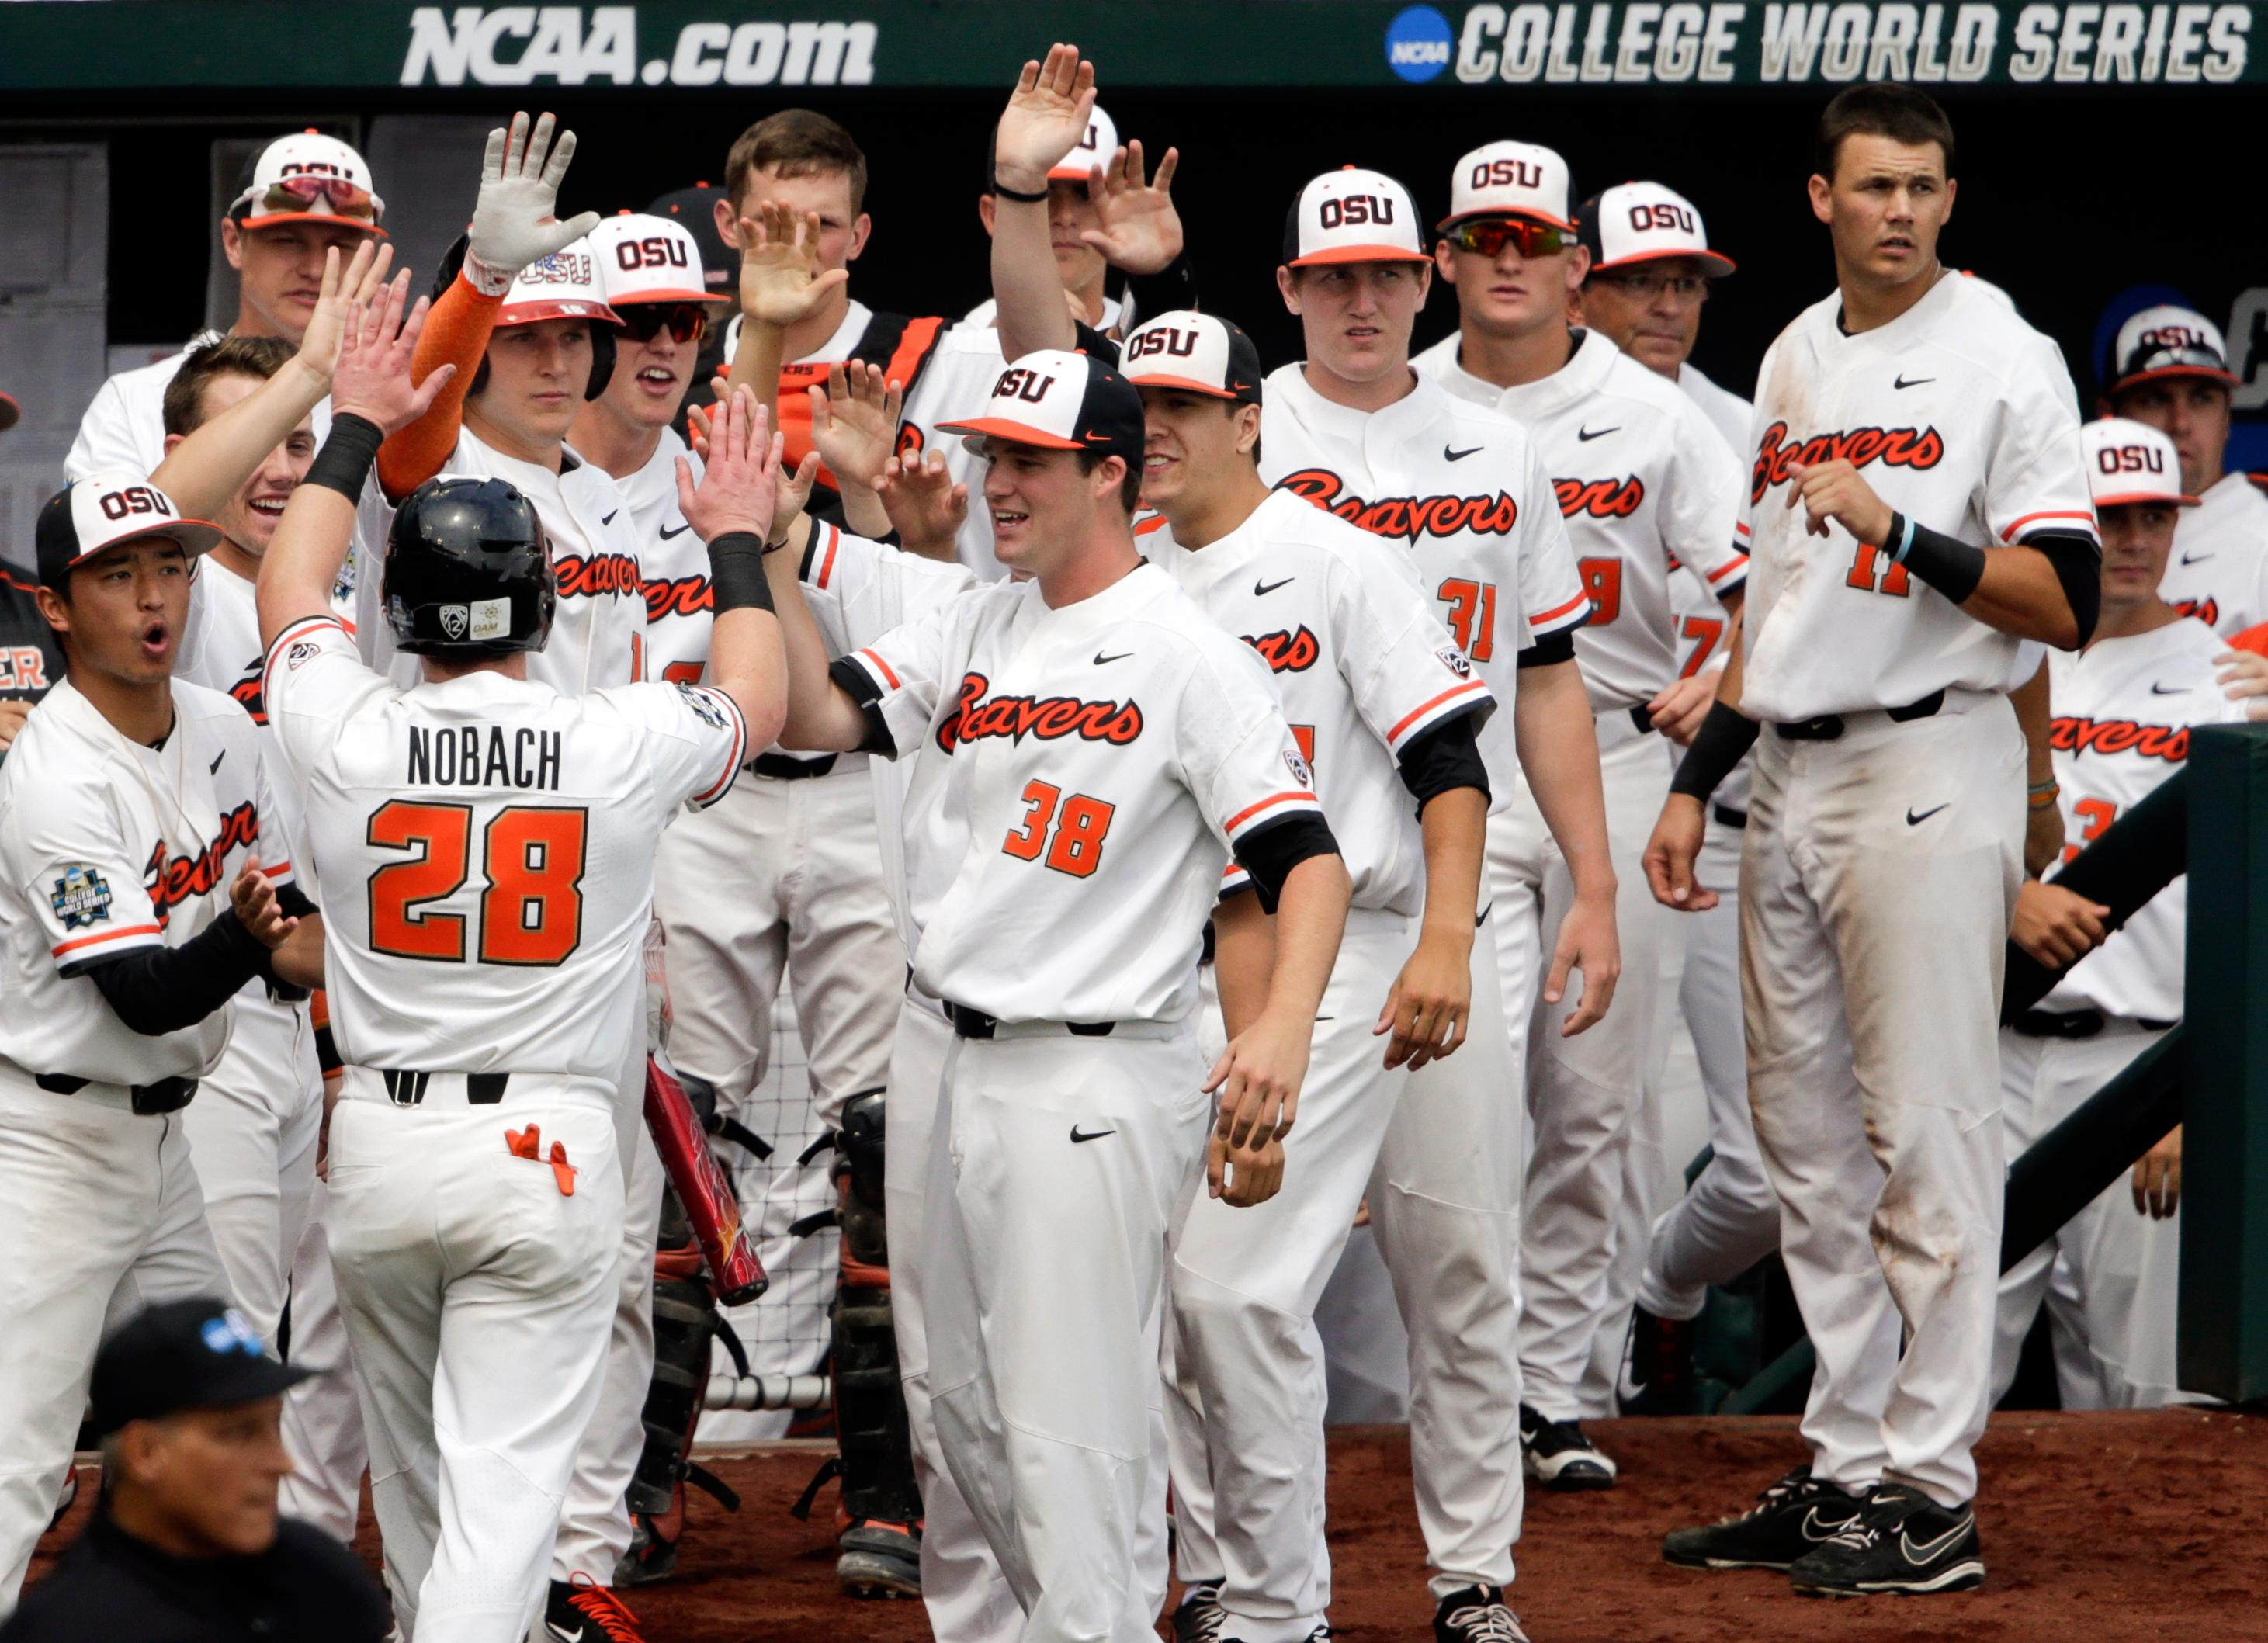 Oregon State's Kyle Nobach (28) is greeted at the dugout after he scored against Mississippi State on a one-run single by Michael Gretler in the second inning of an NCAA College World Series baseball game in Omaha, Neb., Friday, June 22, 2018. (AP Photo/Nati Harnik)